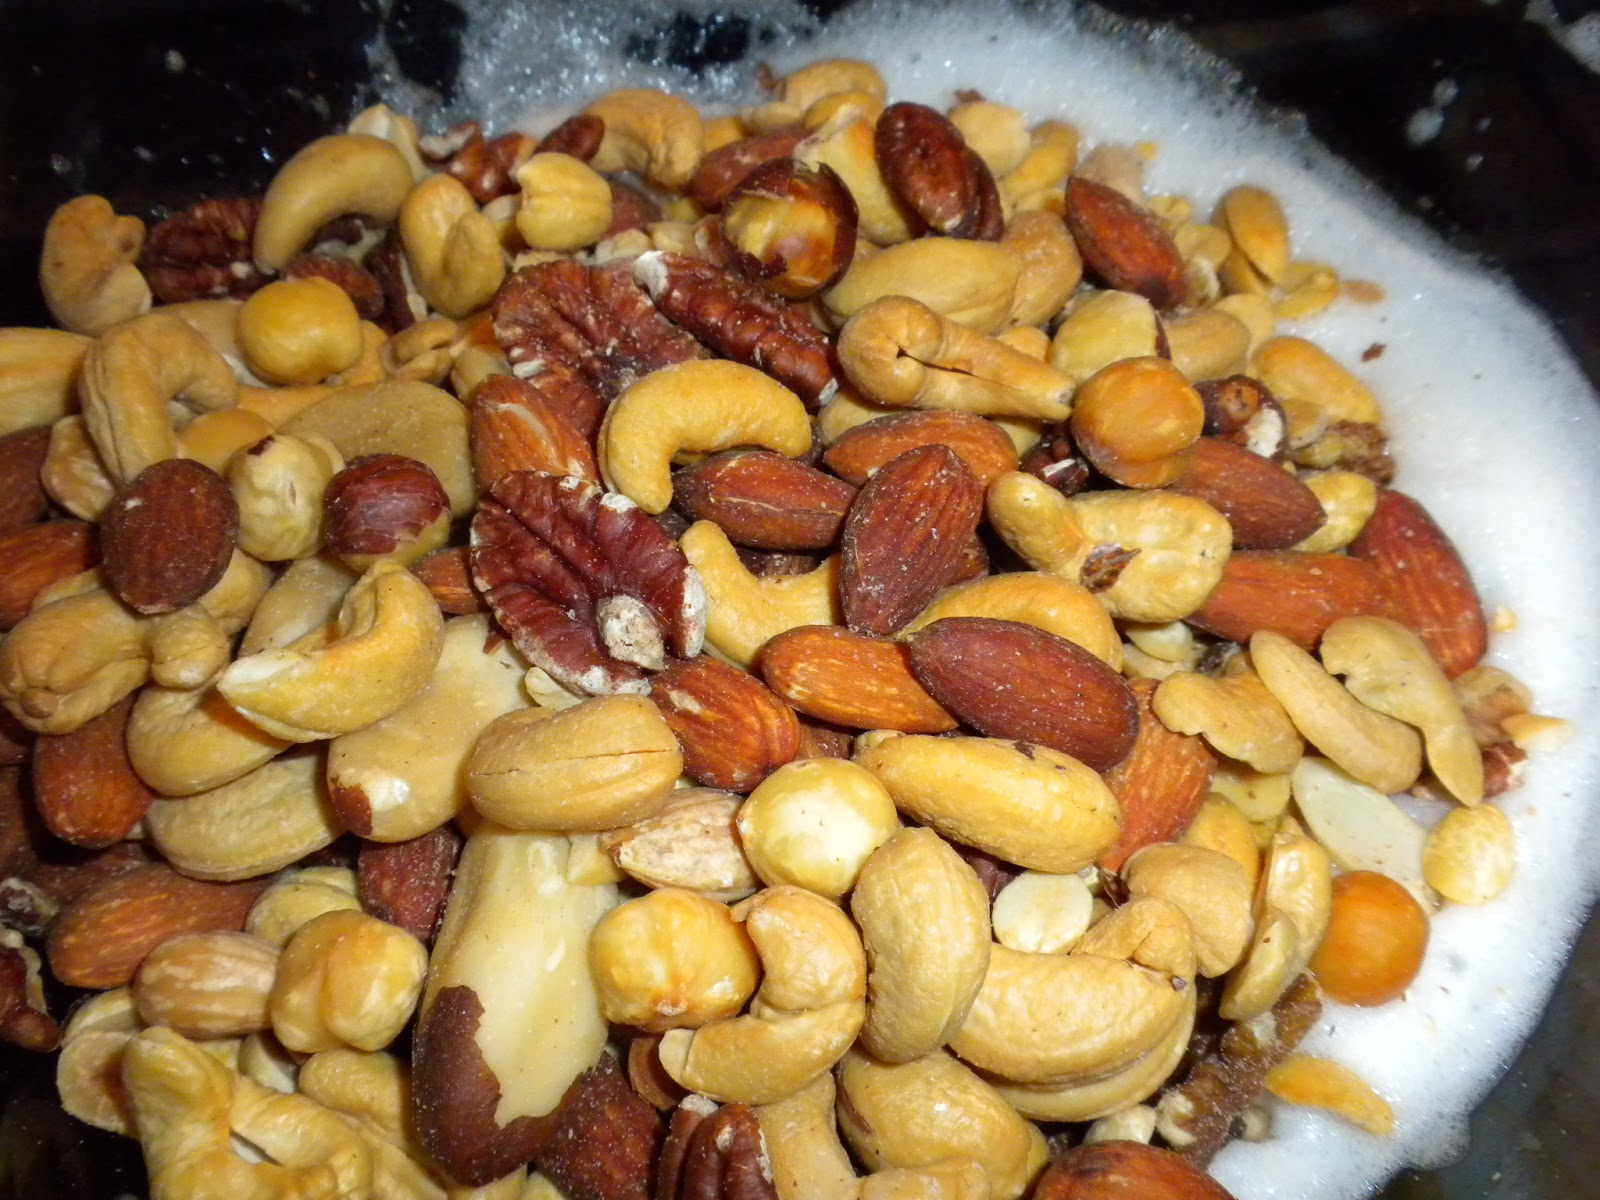 Mixed nuts added to egg whites by Substance of Living